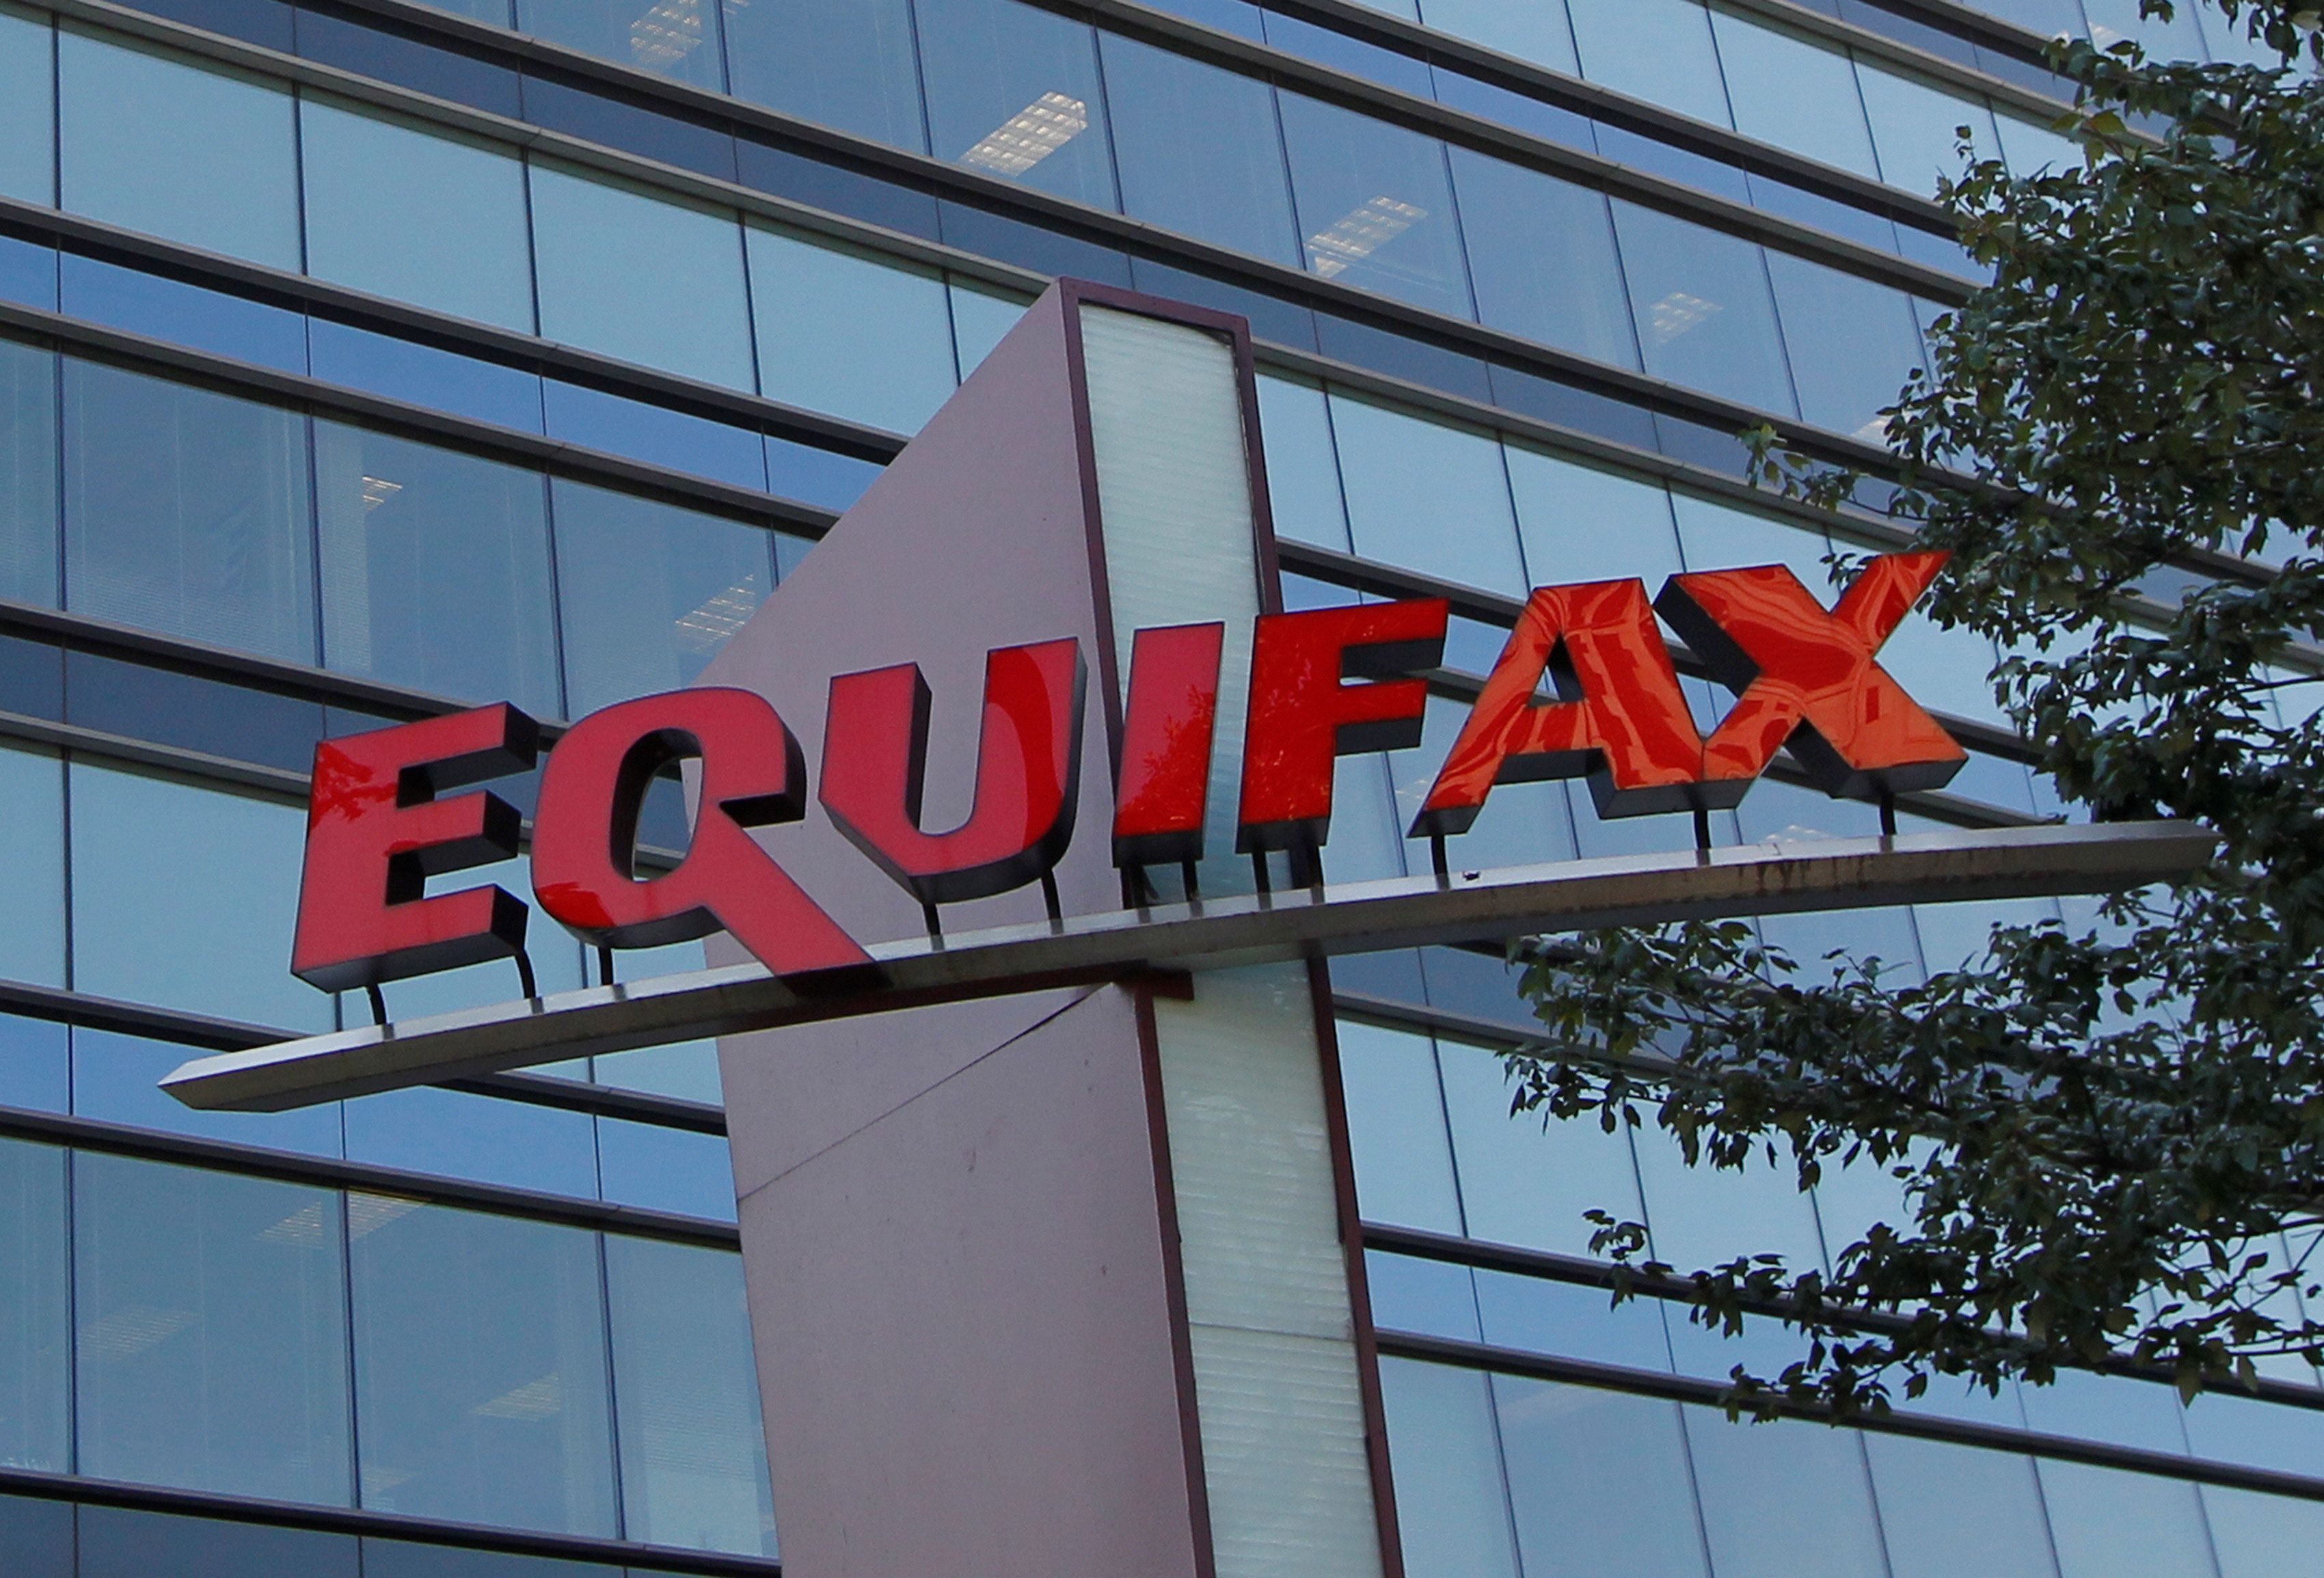 Equifax, one of the big three credit reporting firms, announced last week that hackers stole its data on 143 million Ame